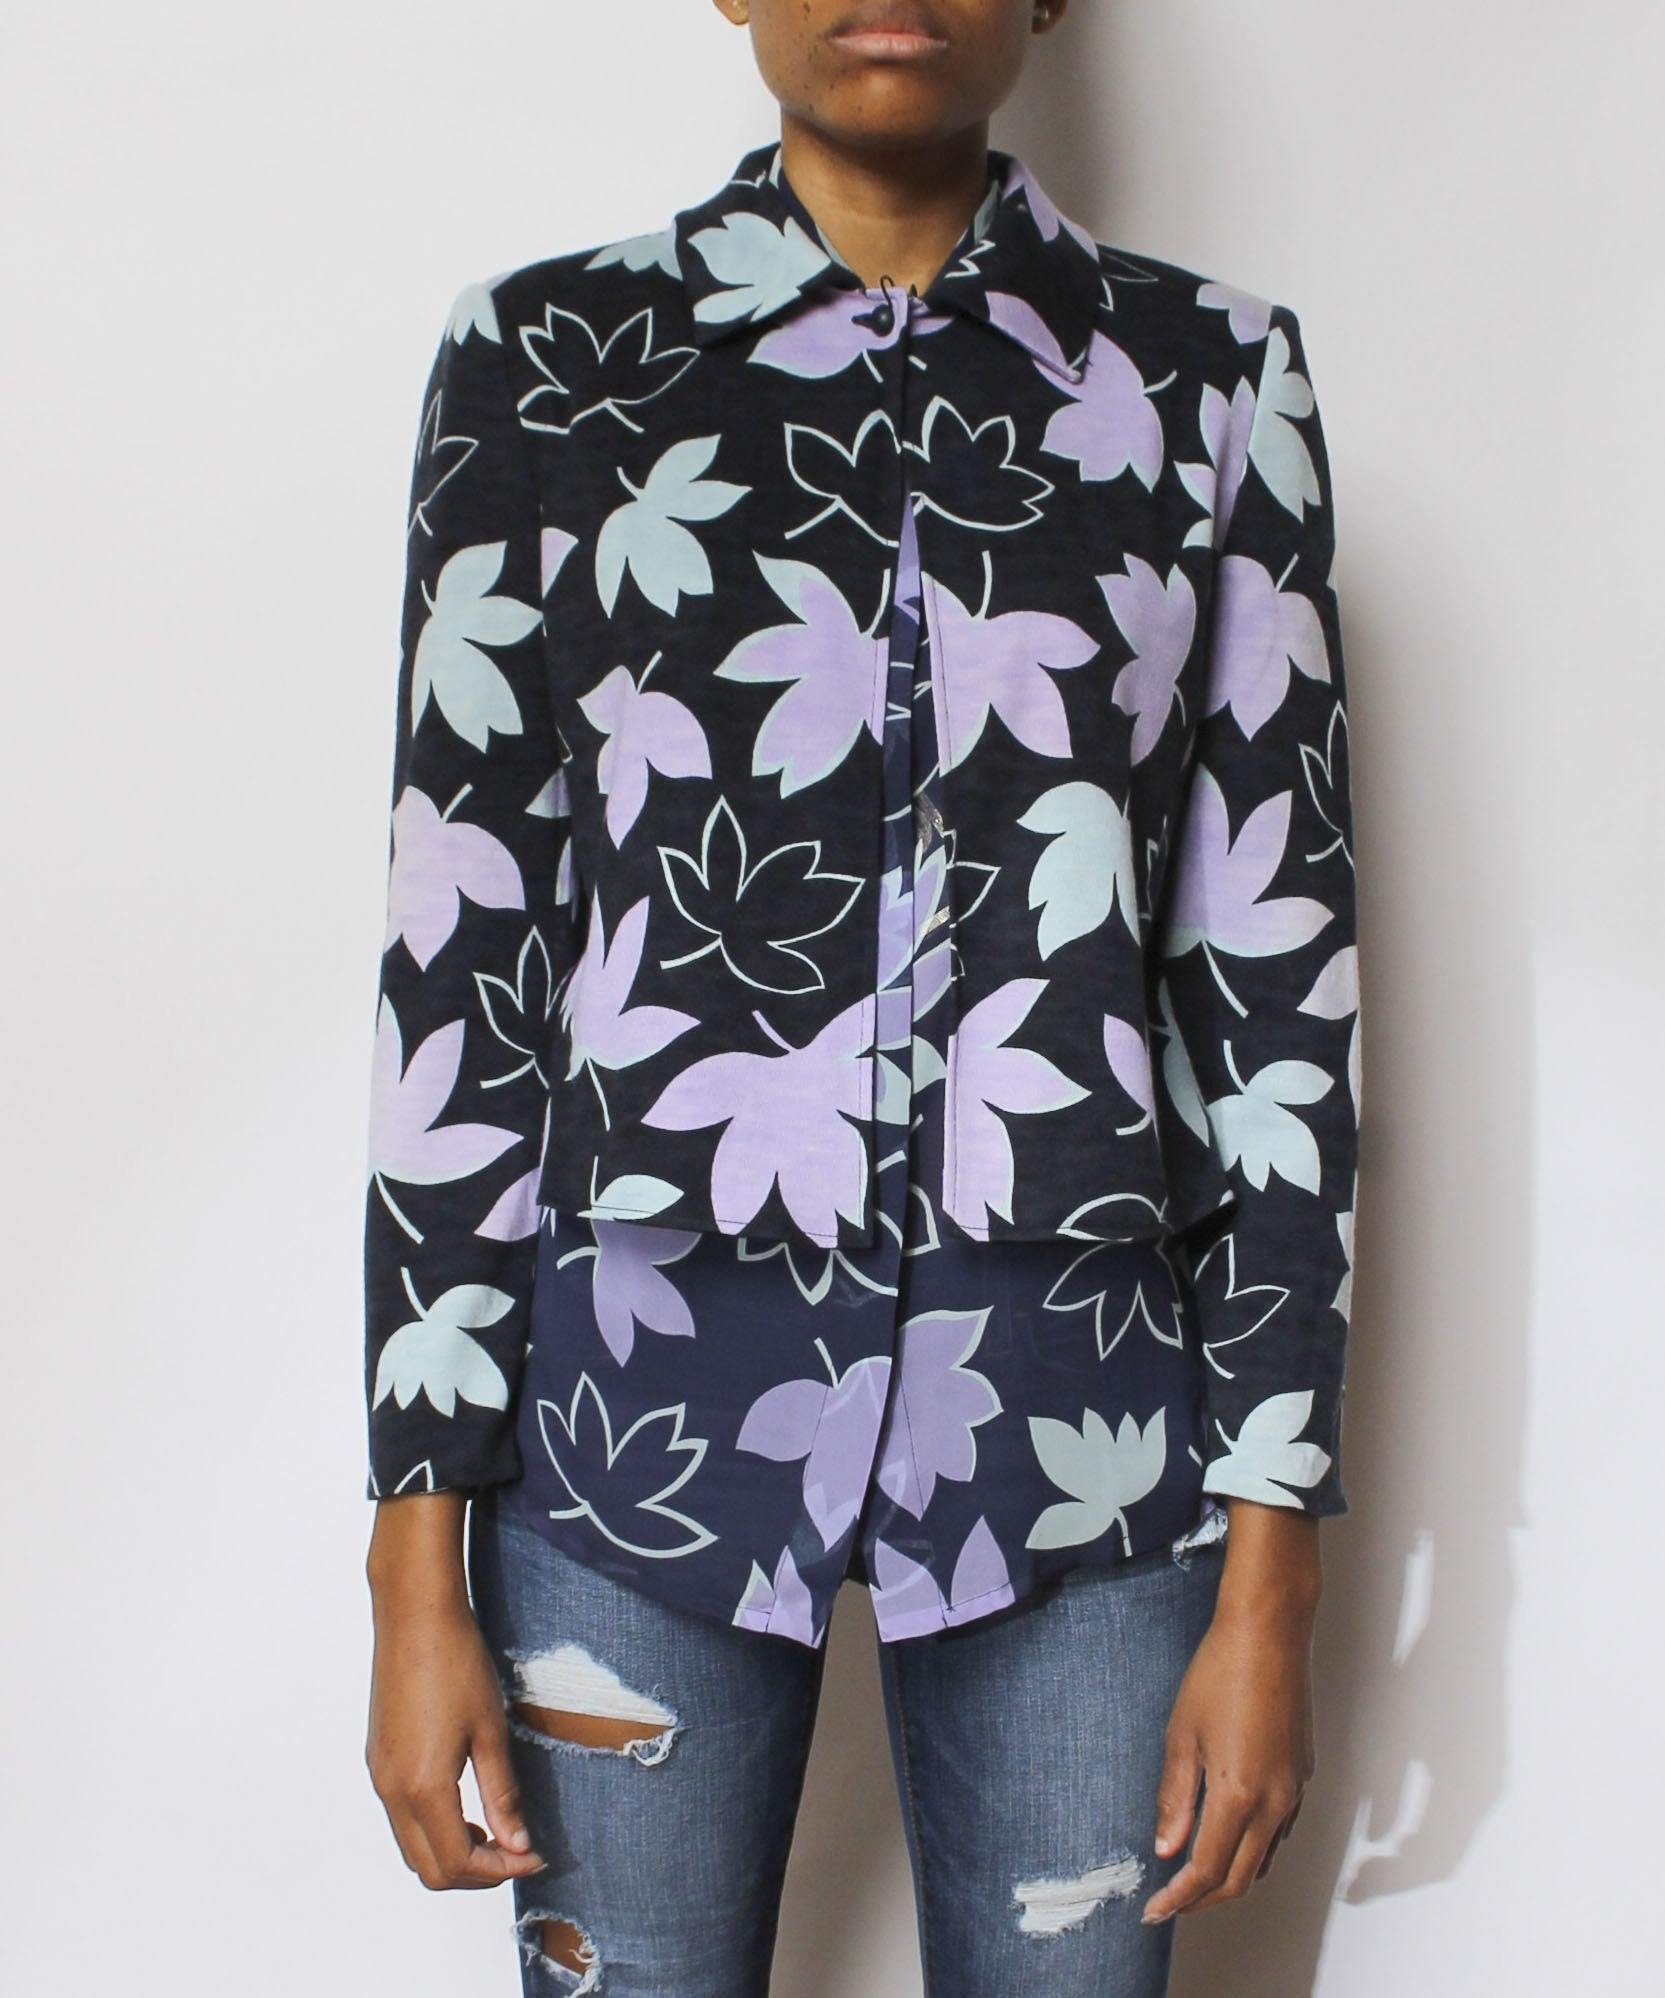 Istante by Versace Leaf Print Blouse & Cardigan with Faux Fur Collar - C.Madeleine's